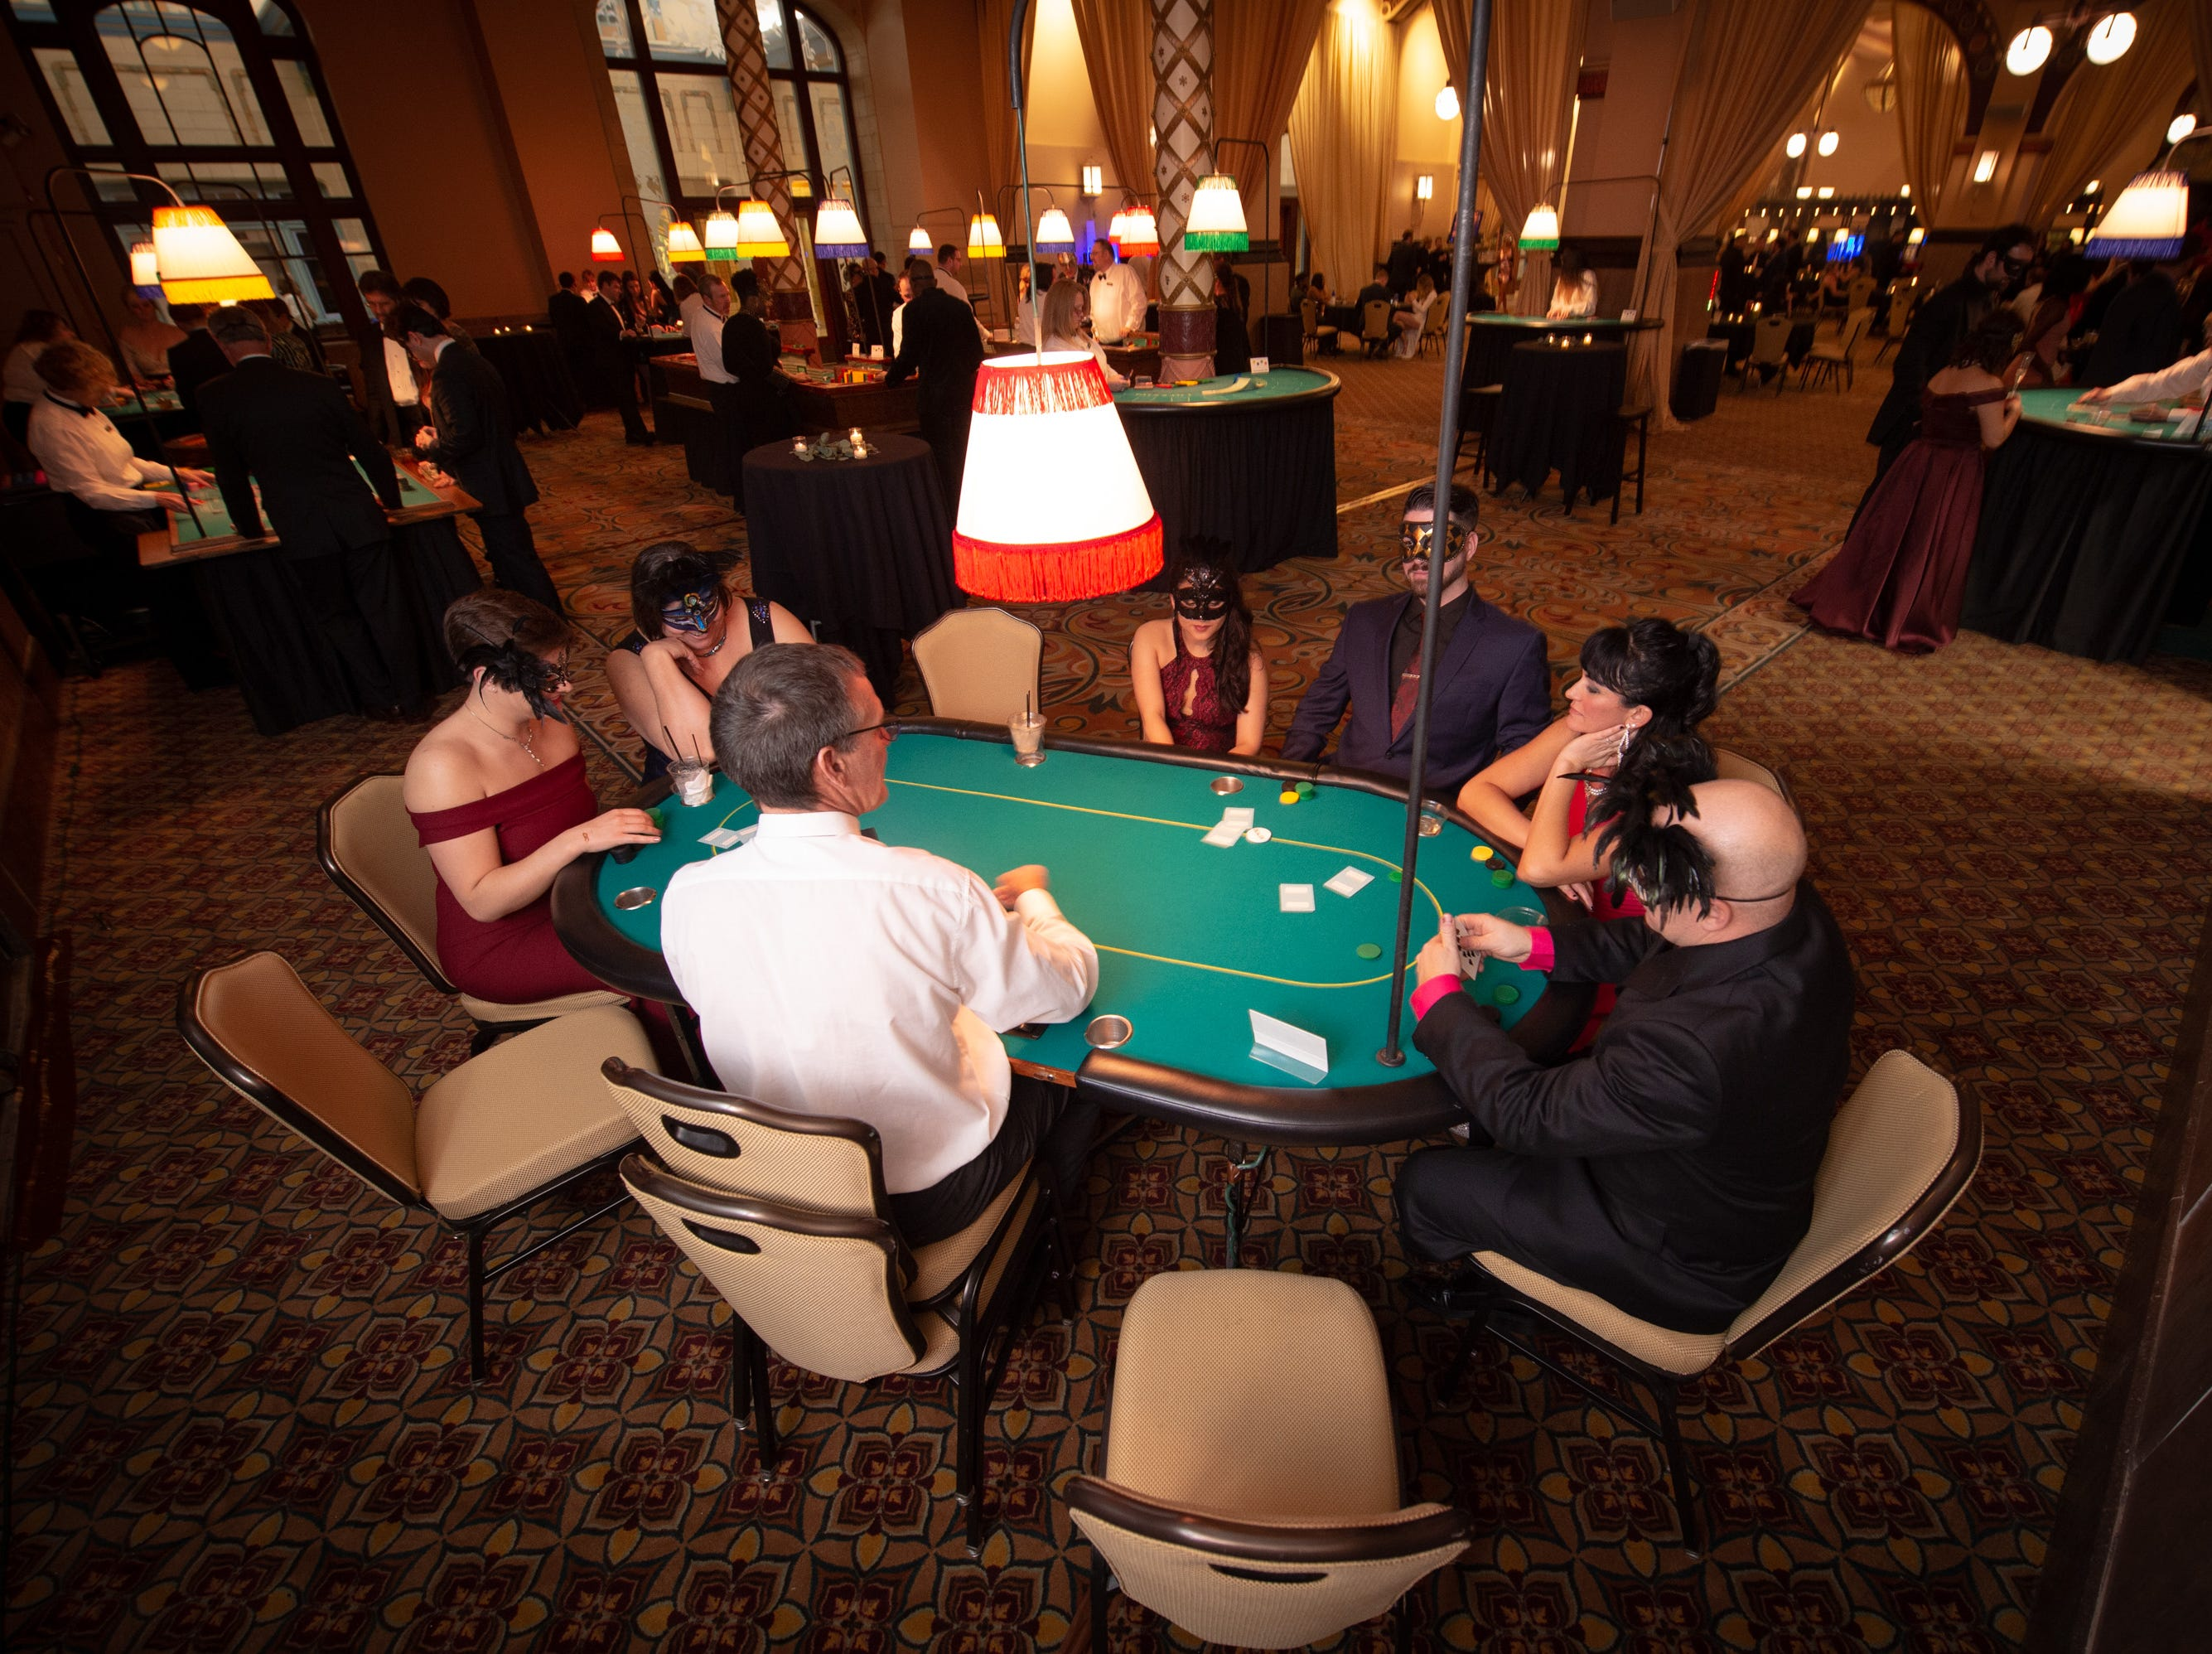 A casino atmosphere helped set the scene for guests Monday, Dec. 31, 2018, at The 12th Annual Indy Masquerade held at Union Station in Indianapolis.